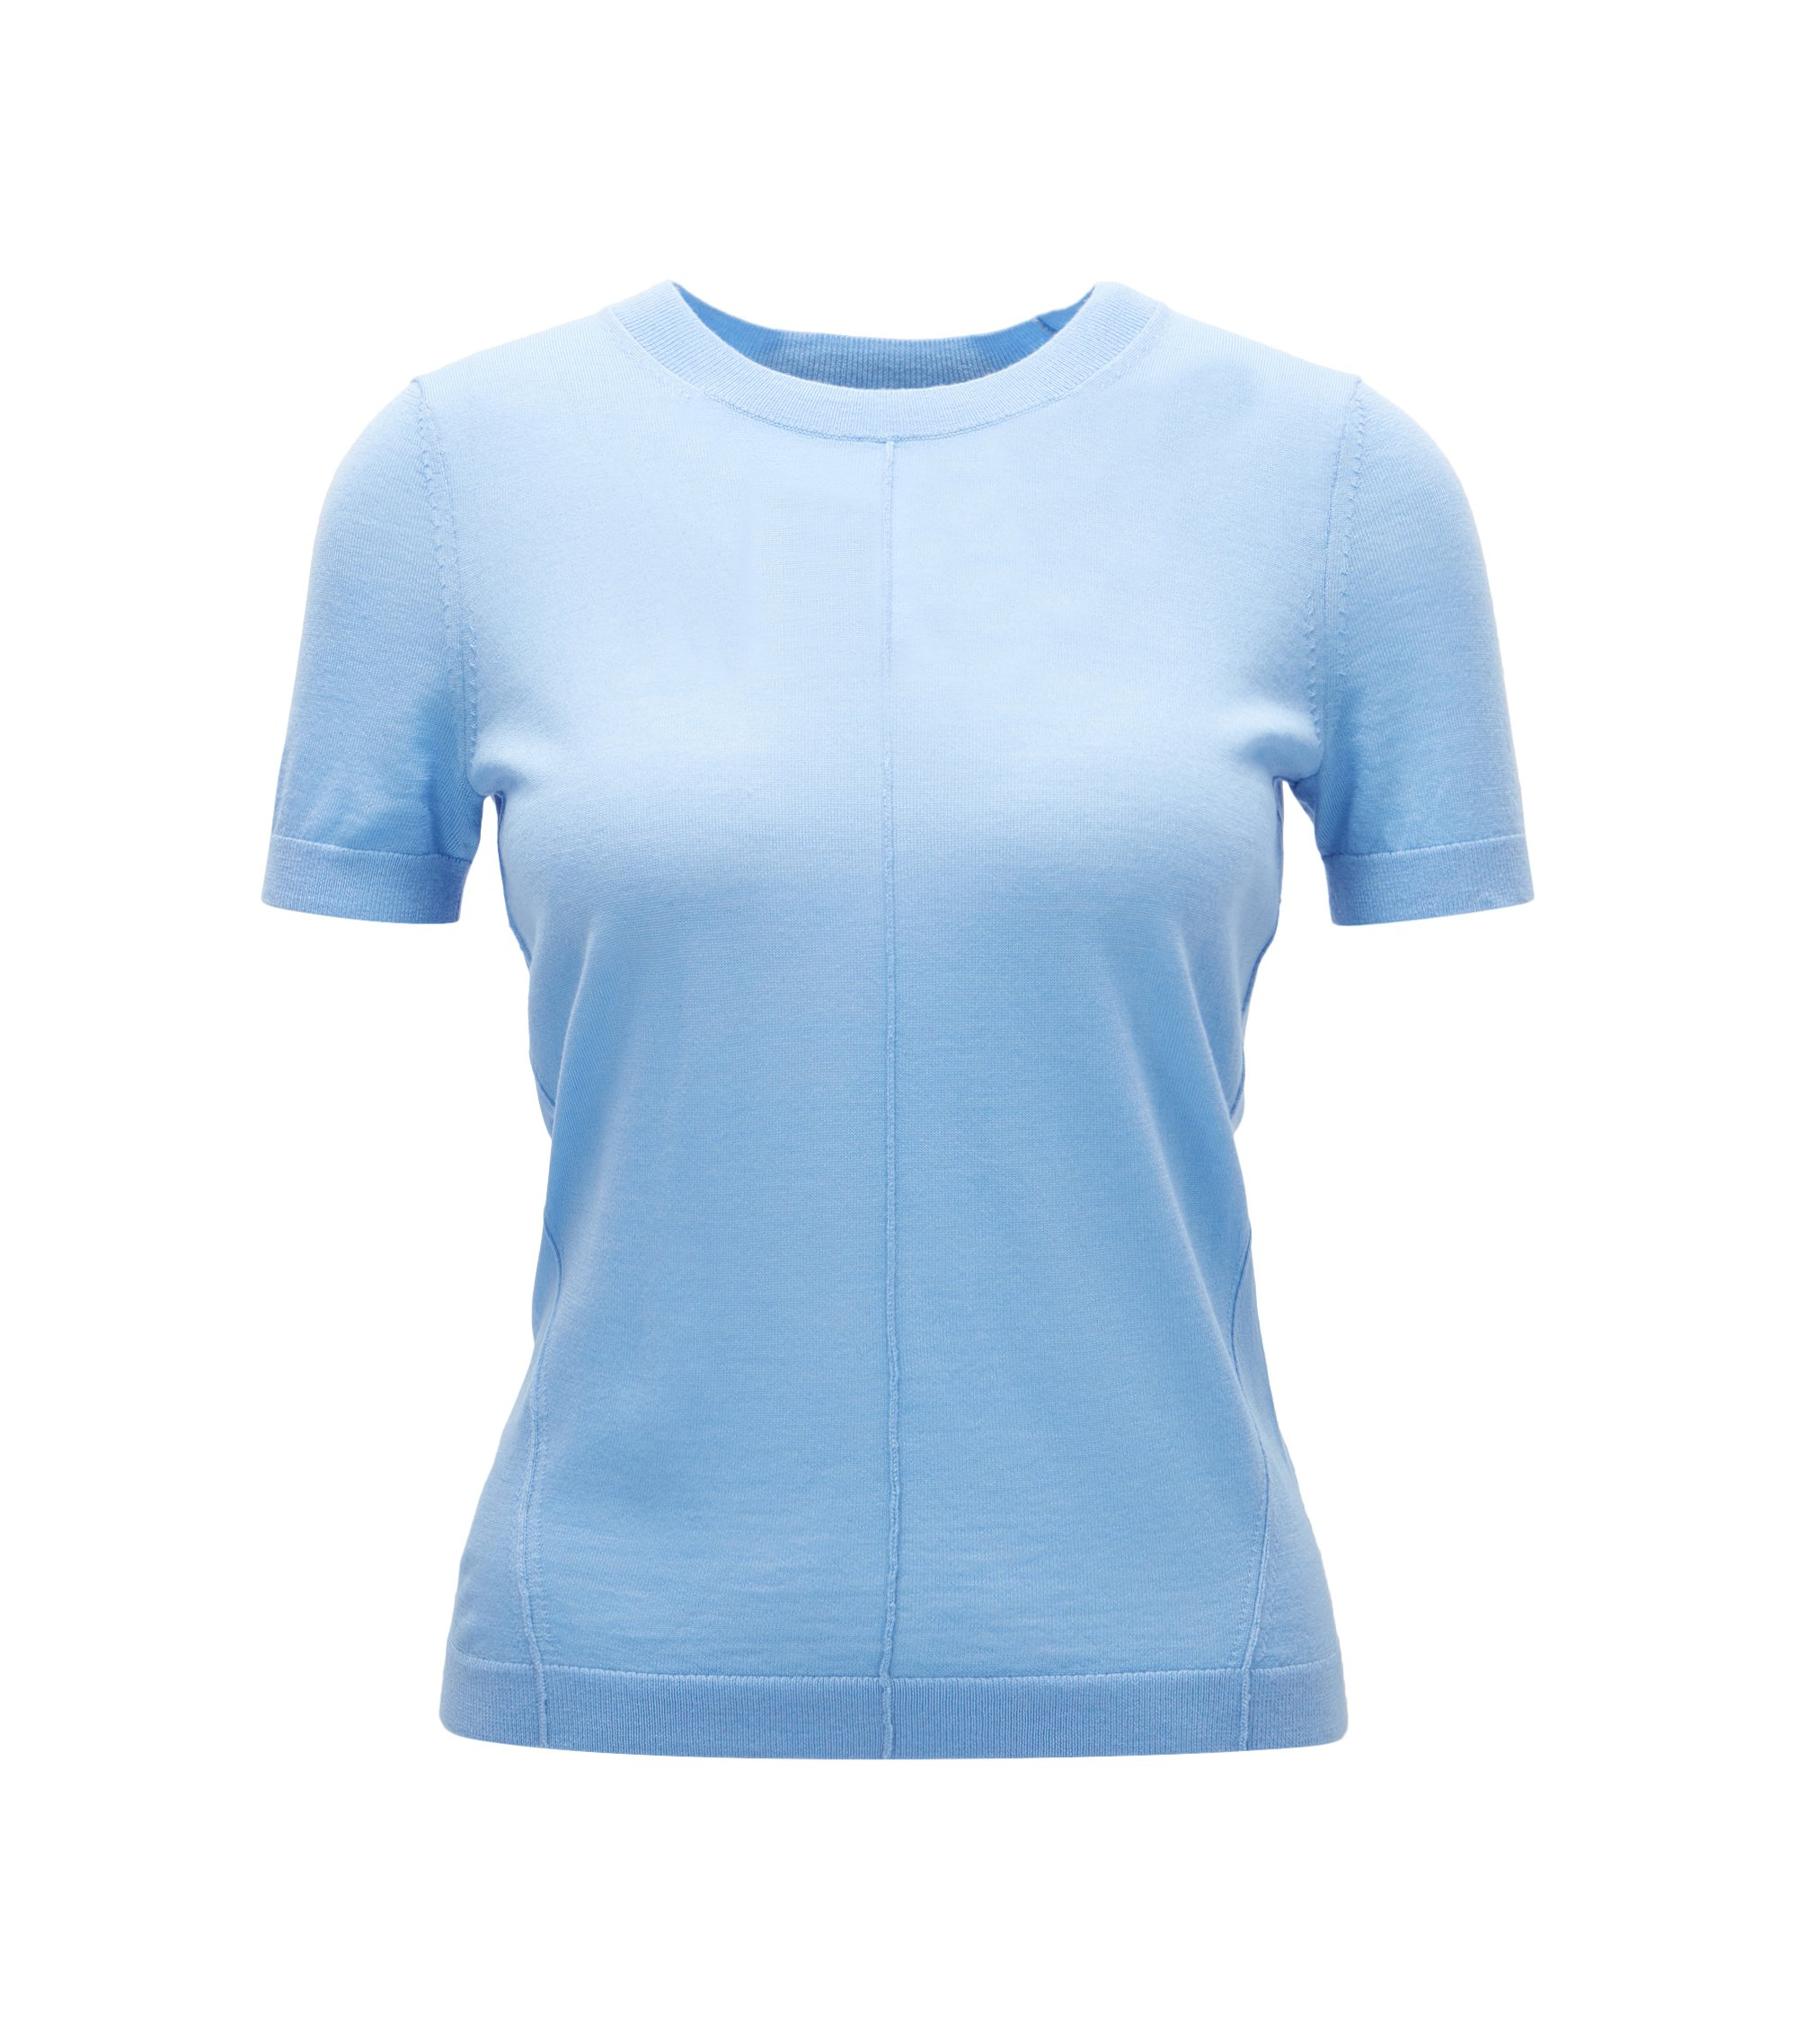 Virgin Wool Knit Top | Fuyuka, Turquoise